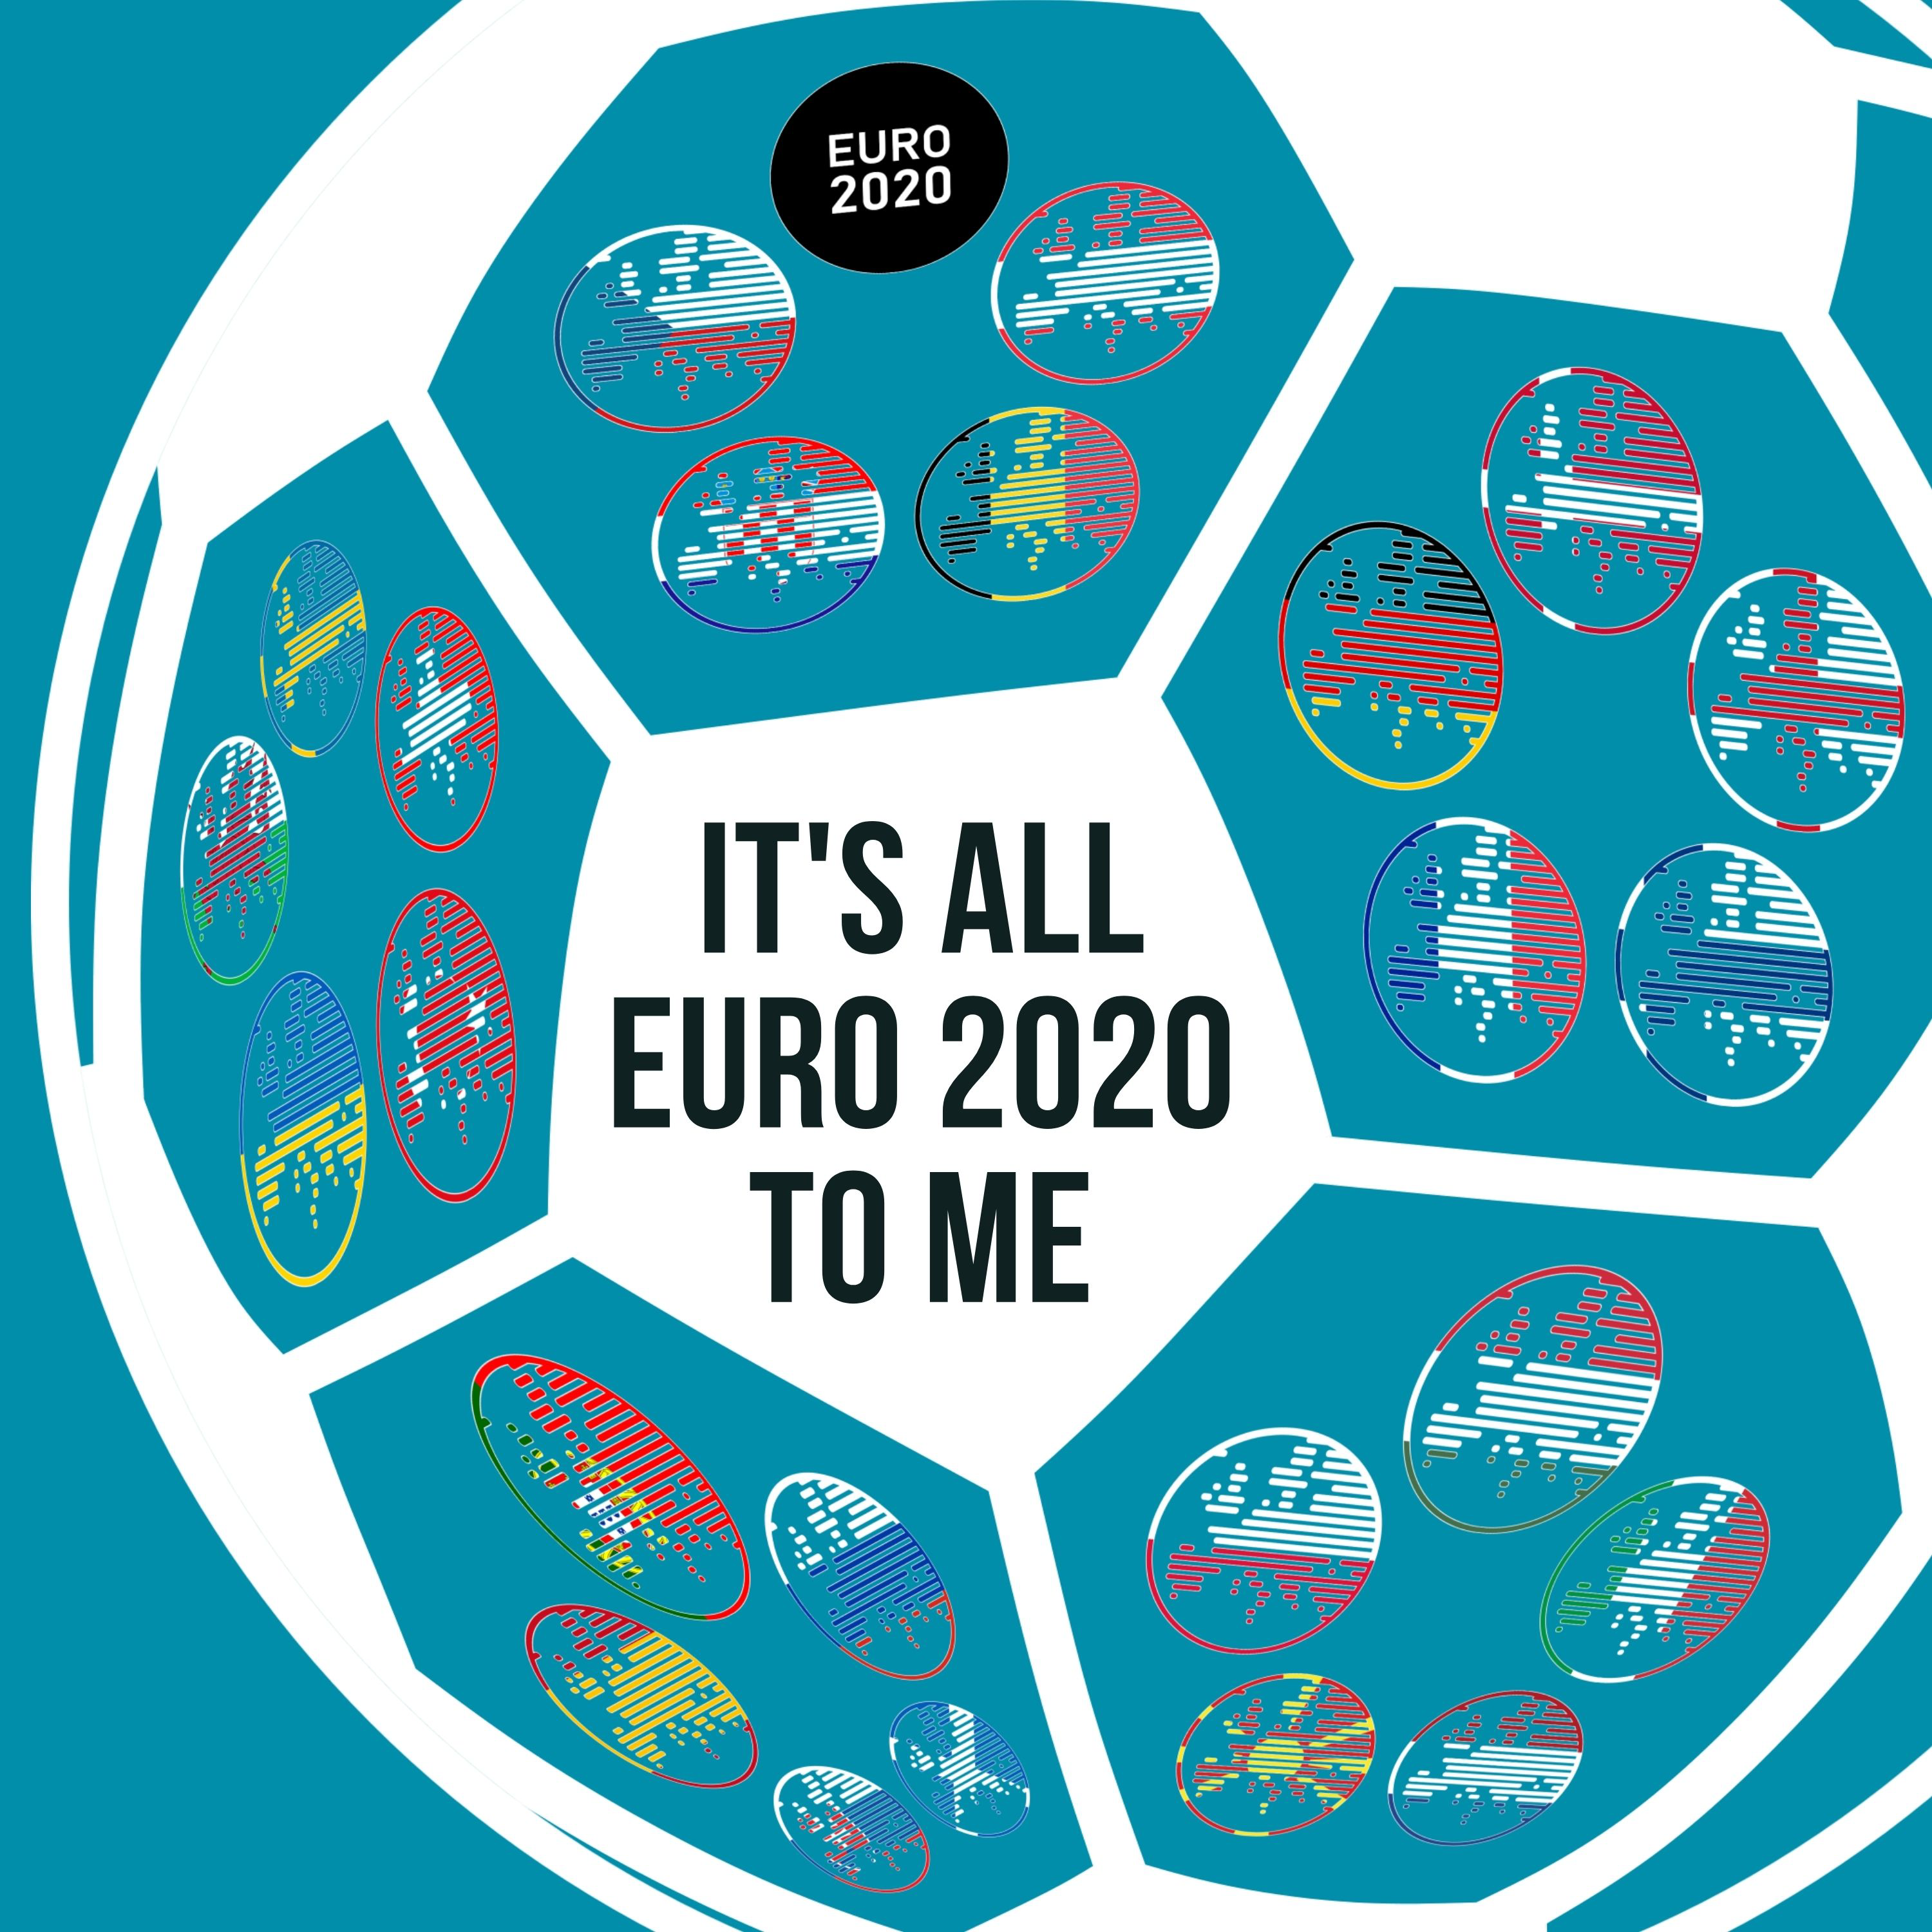 It's All Euro 2020 To Me